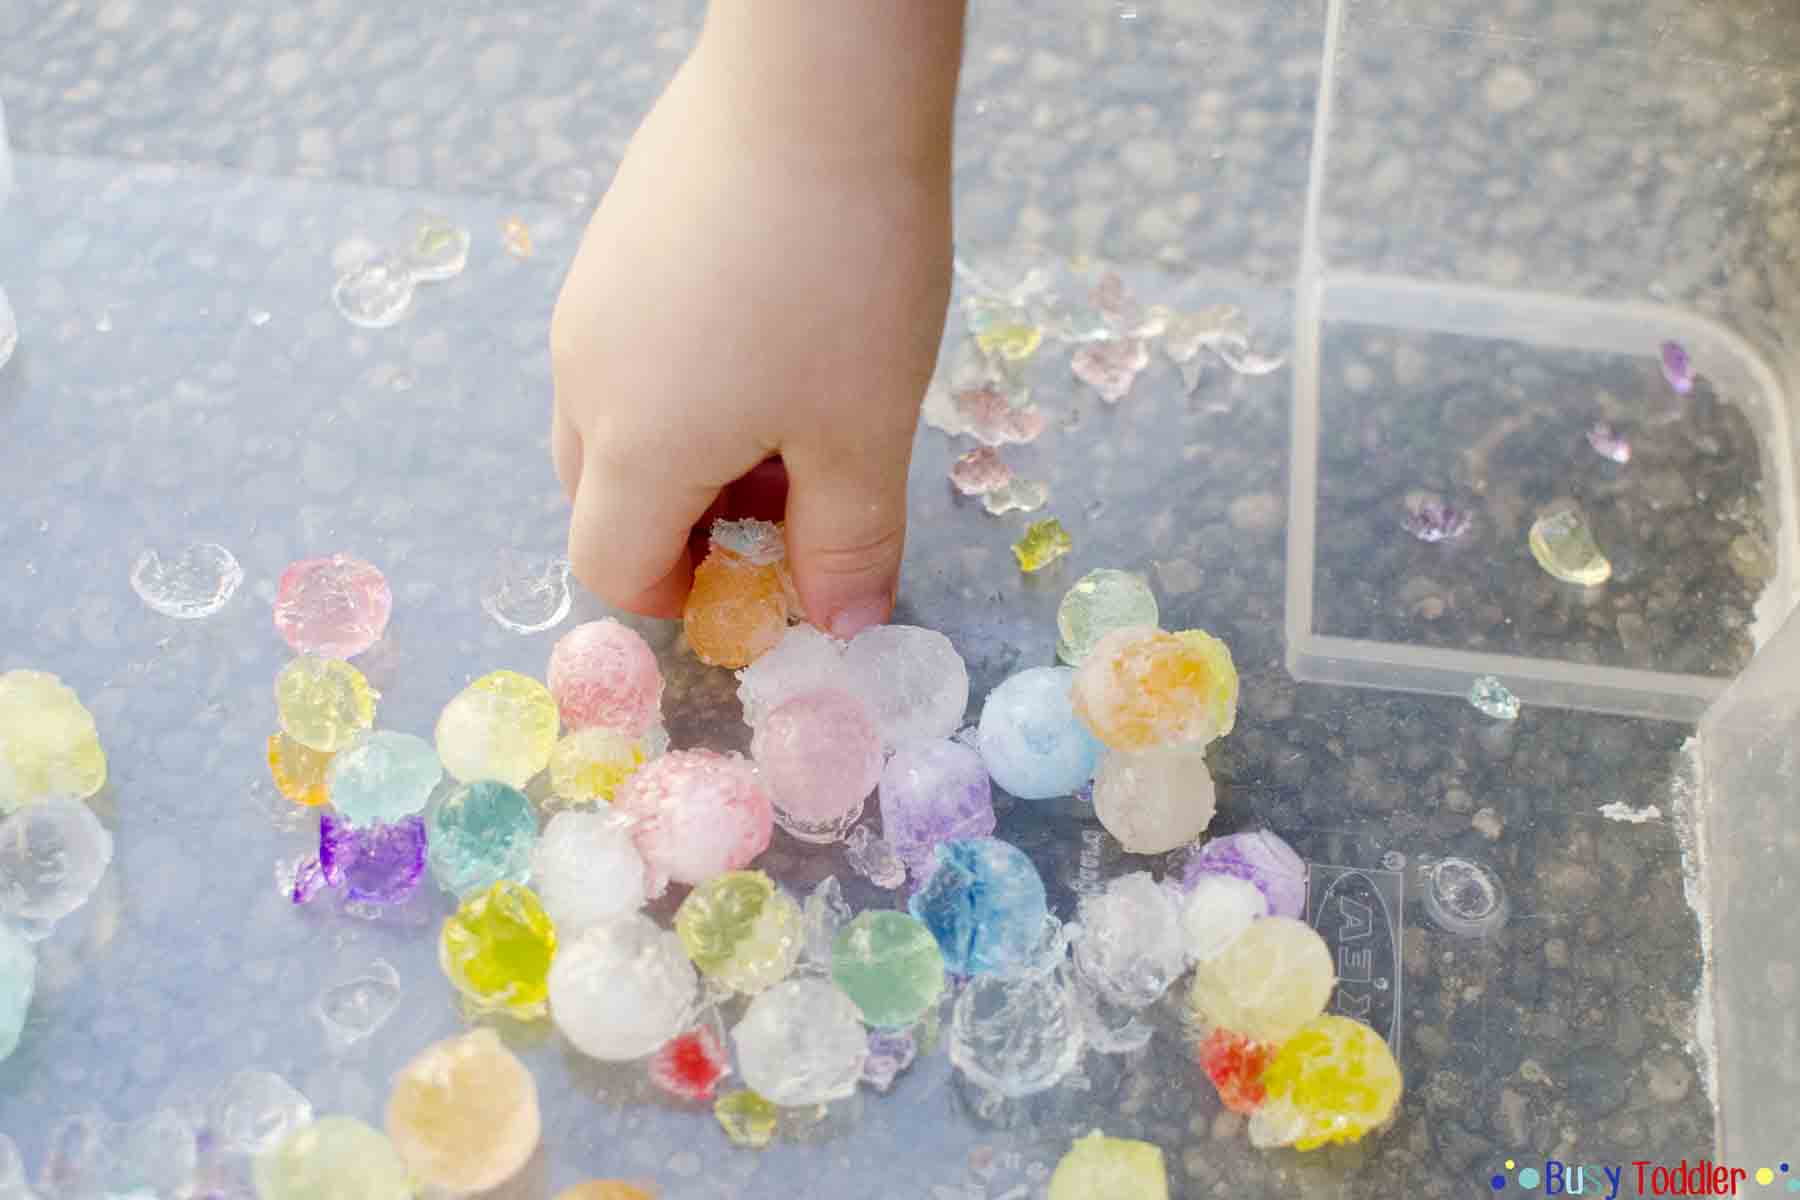 Water Bead Activities: Quick and easy water bead activities for kids - they'll love these fun ideas from Busy Toddler